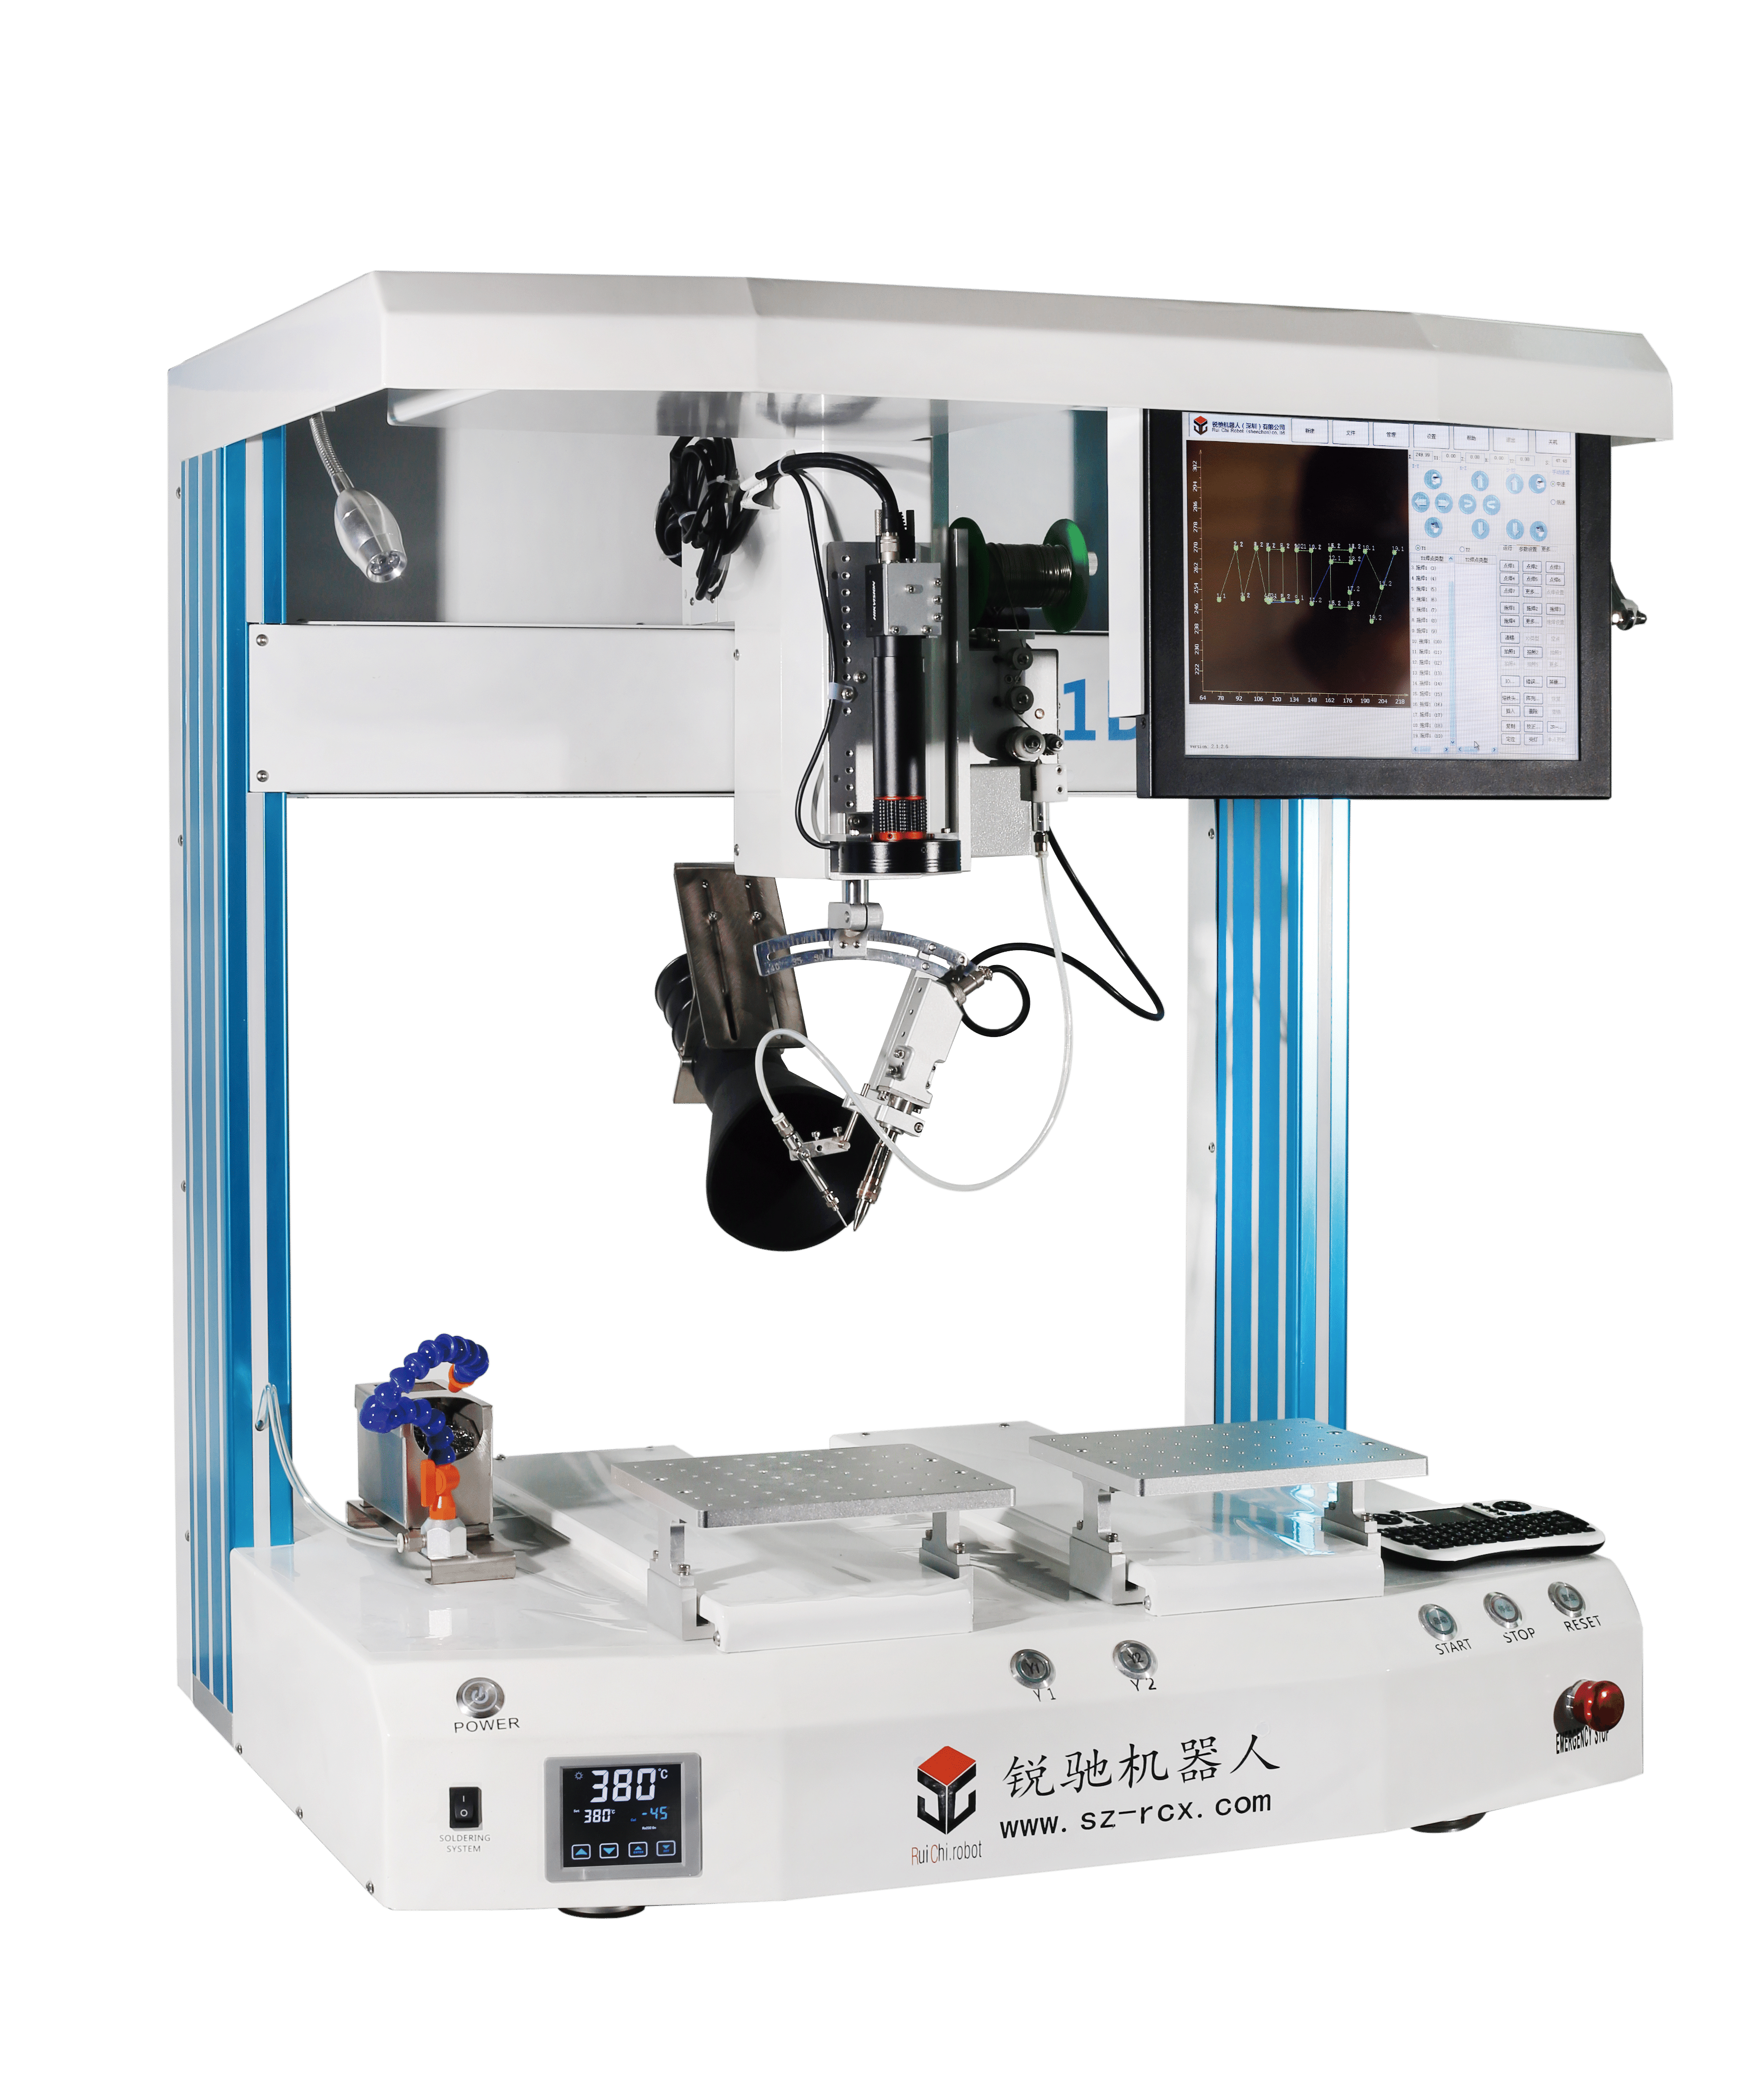 Dual Workstation Soldering Machine with CCD Camera(R501DTC) Featured Image